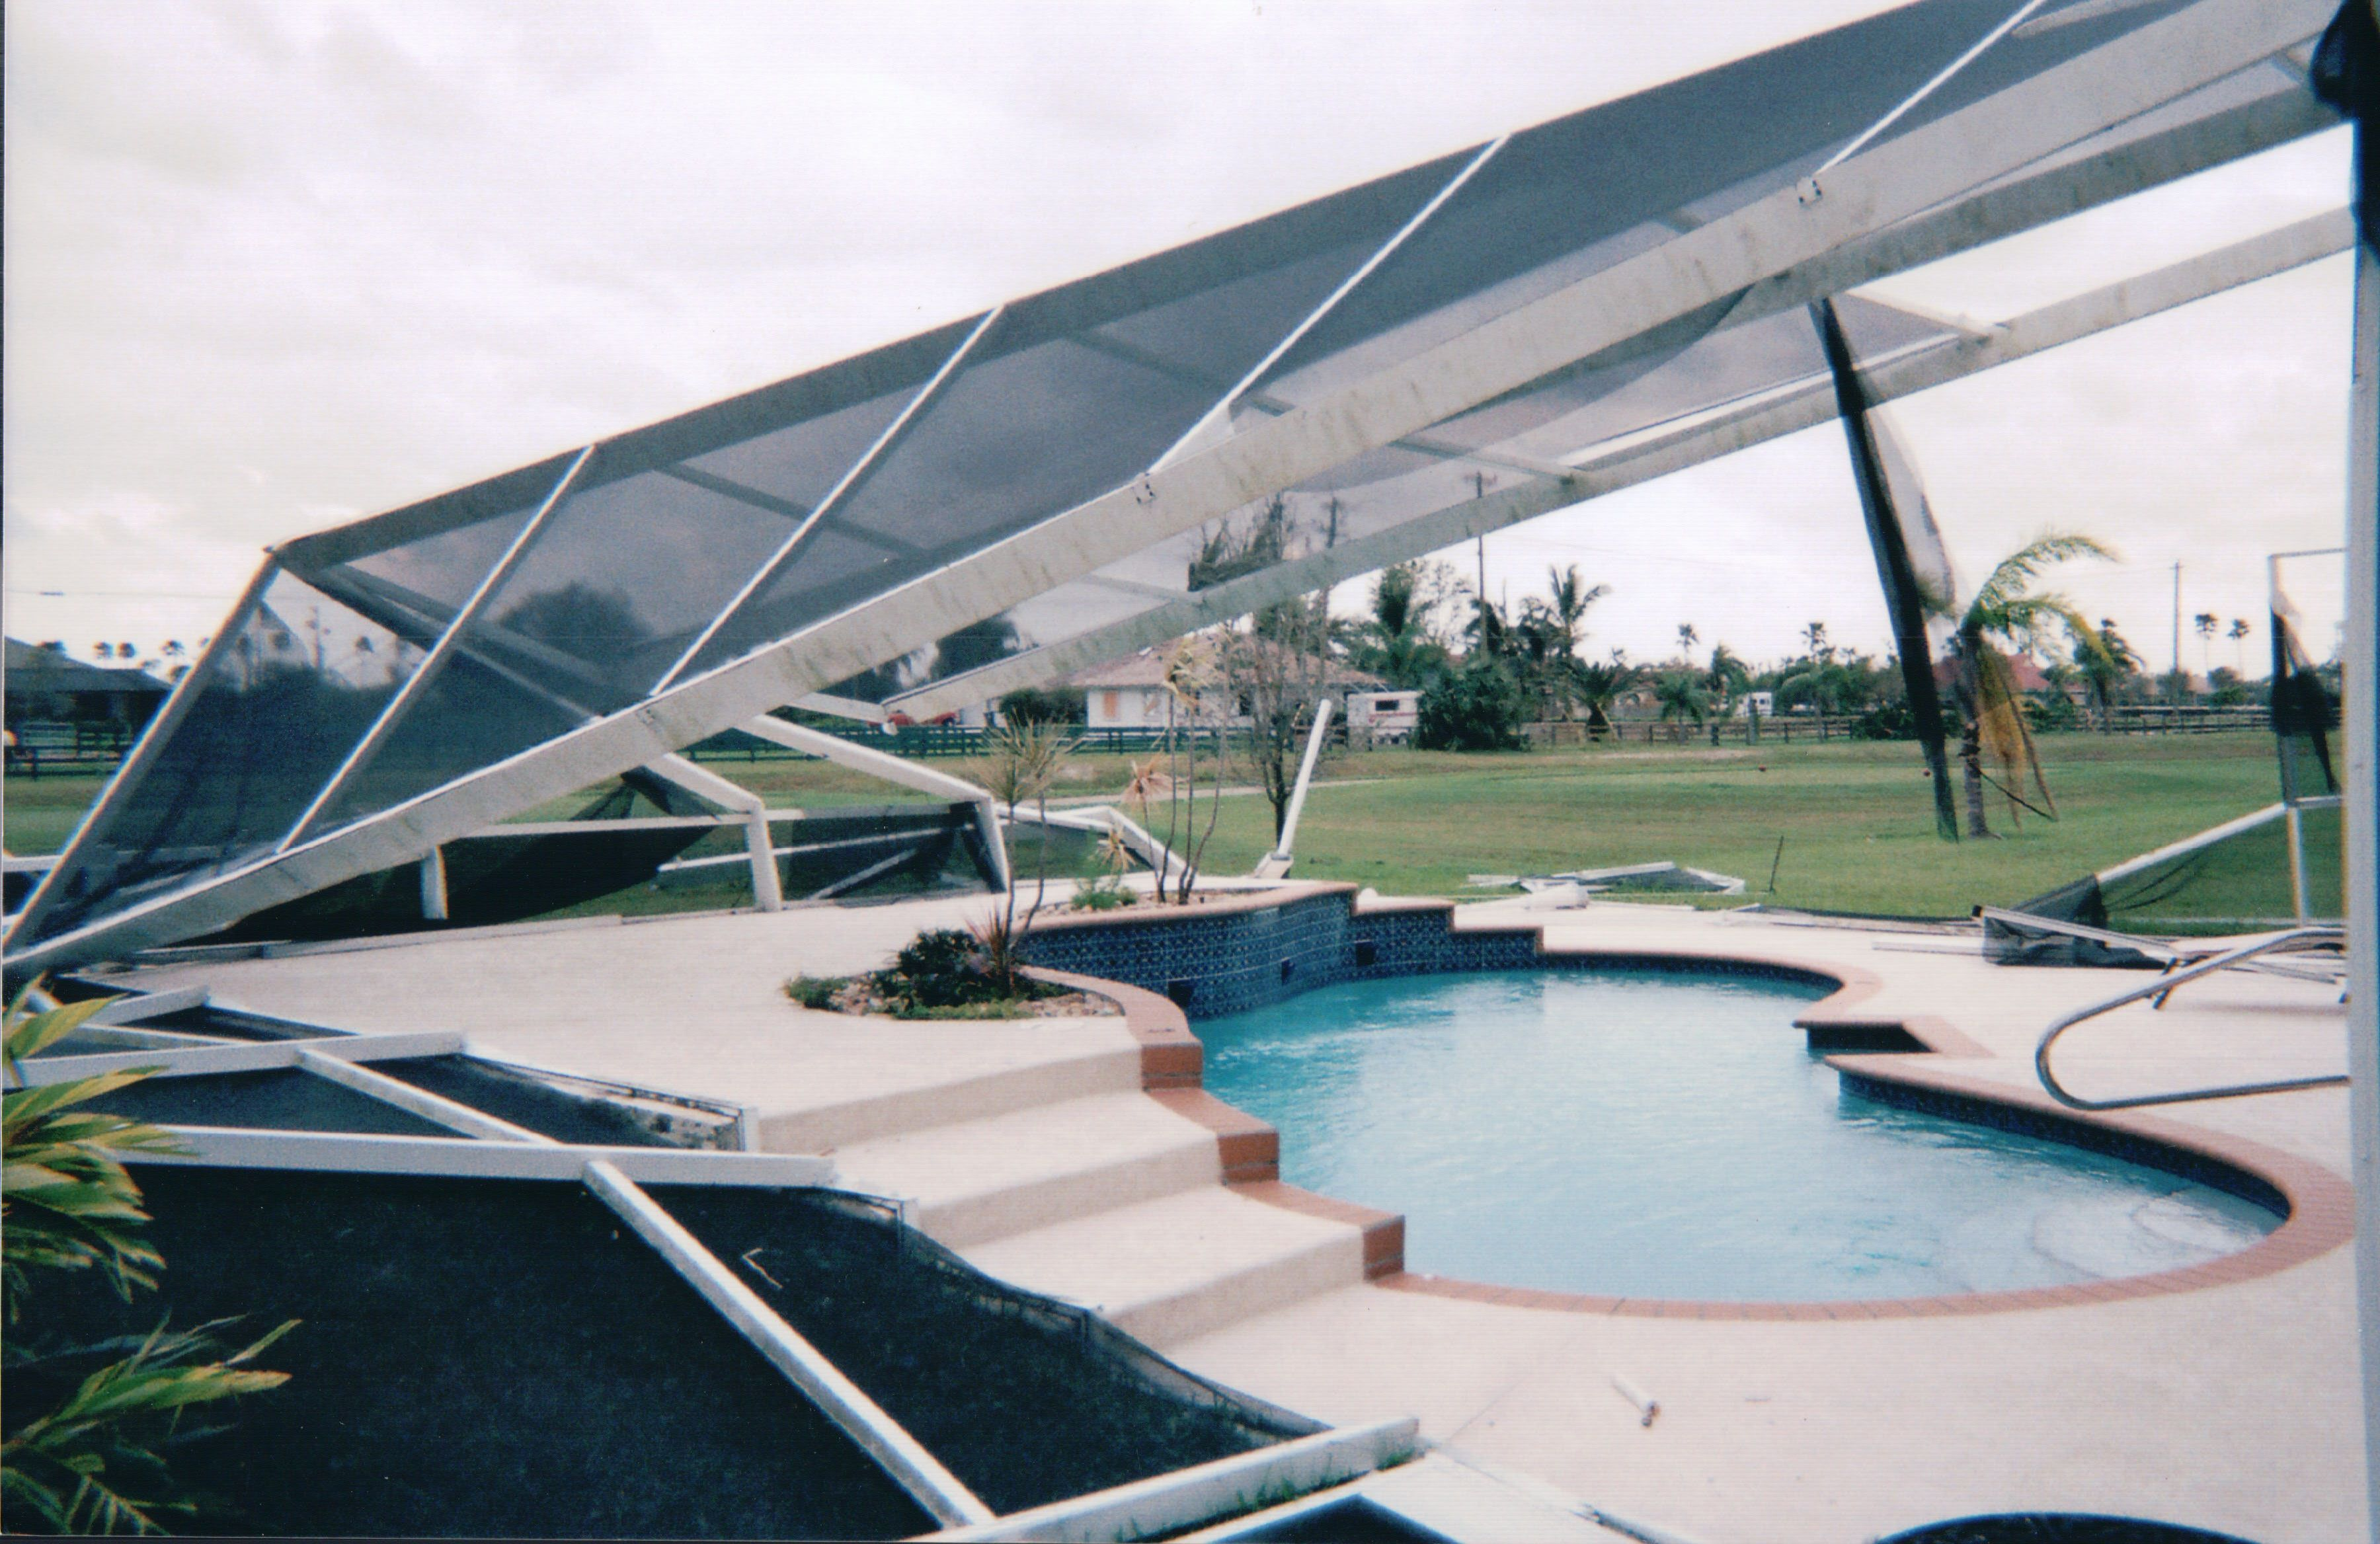 This Pool Screen Enclosure Was Ripped Off The House Screen